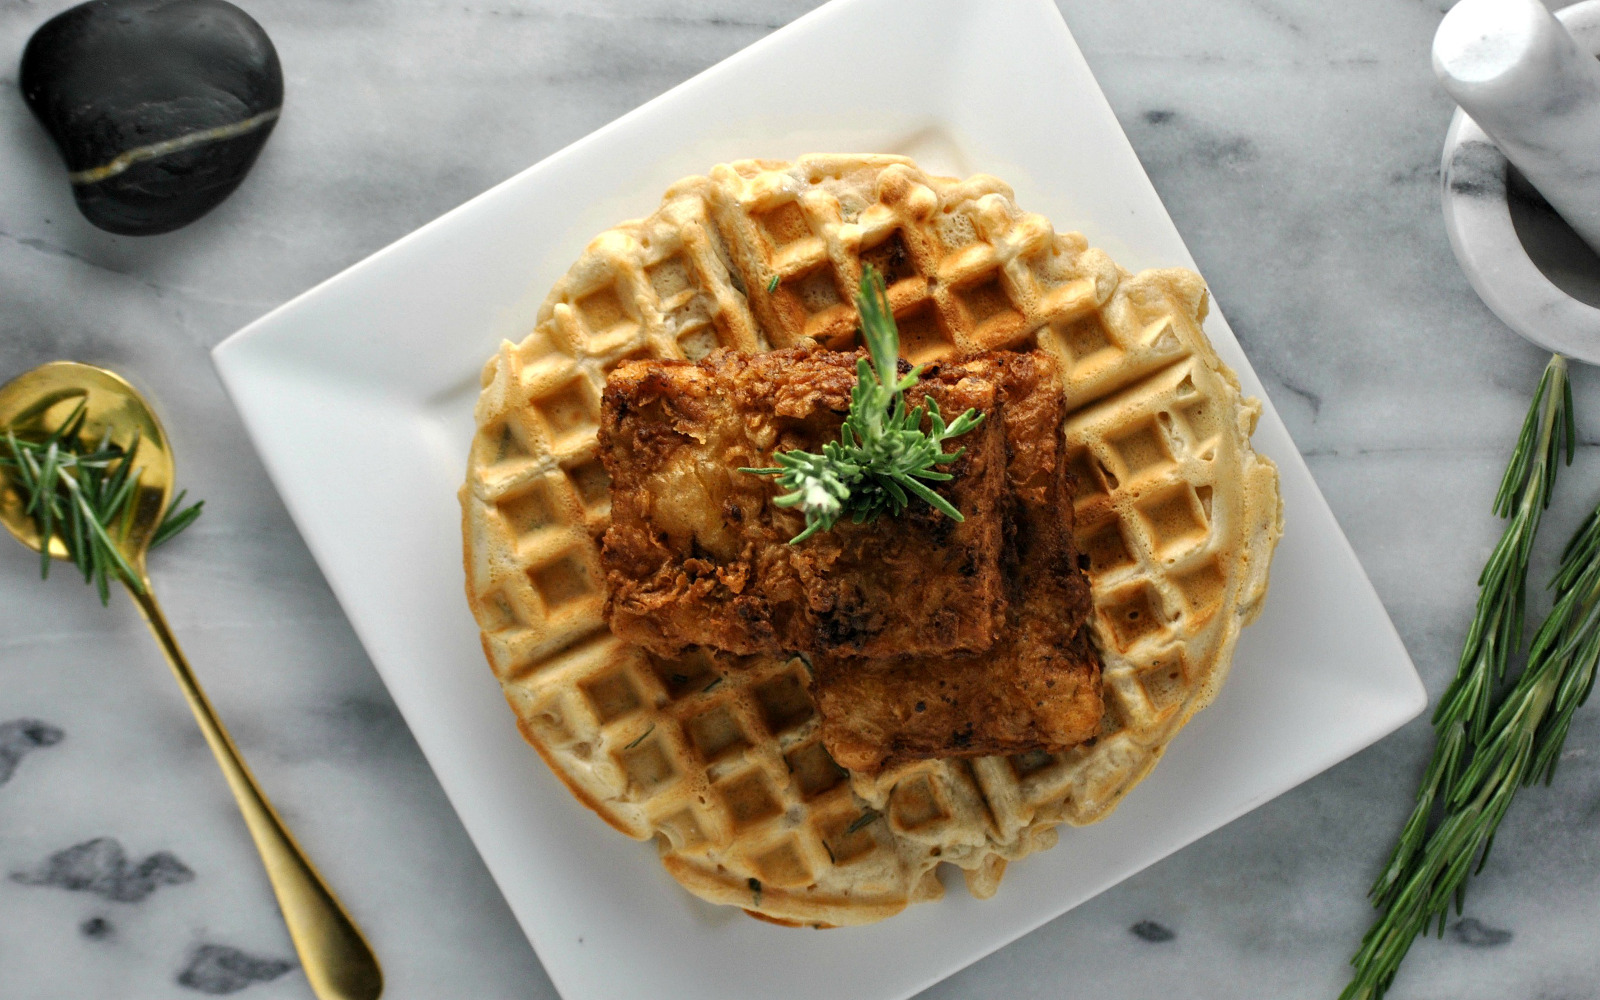 Vegan chicken and waffles